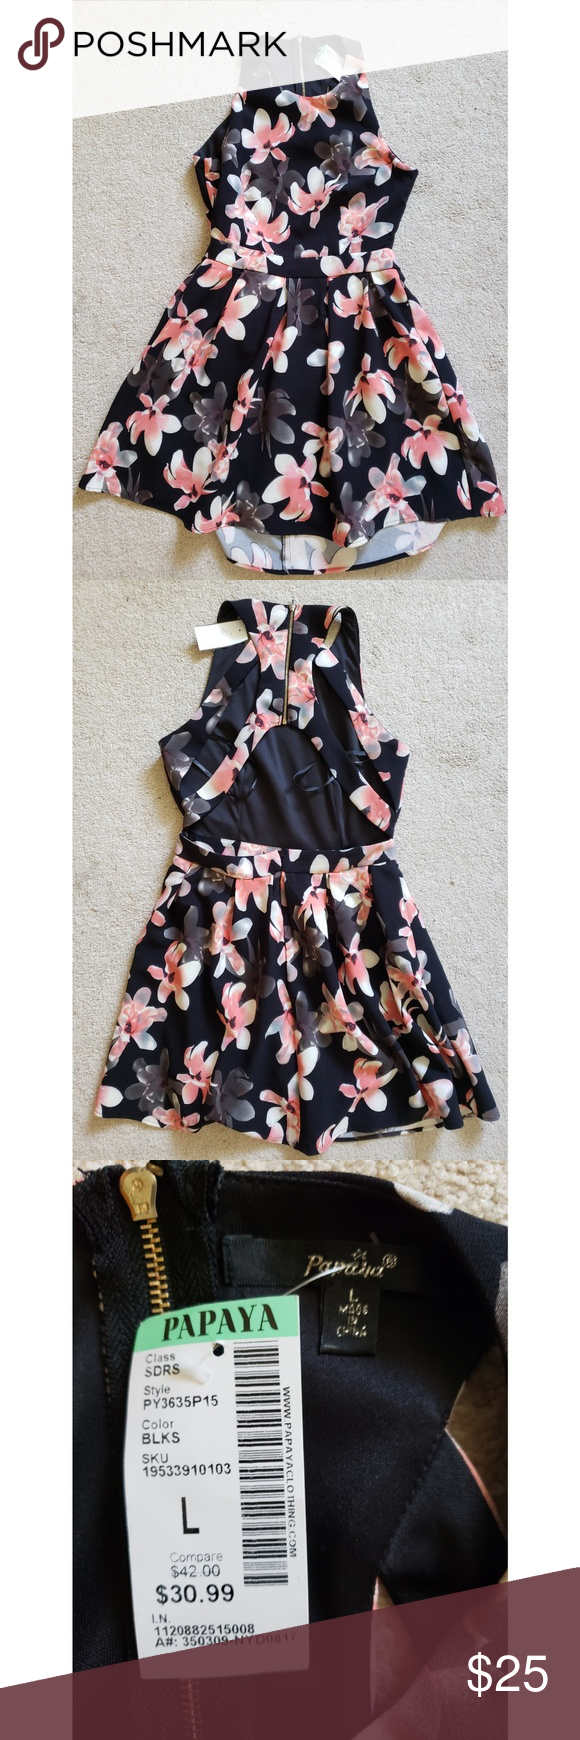 Women's Cocktail Dress Women's Larfe Black Floral Open Back Cocktail Dress NWT Papaya Dresses Backless #backlesscocktaildress